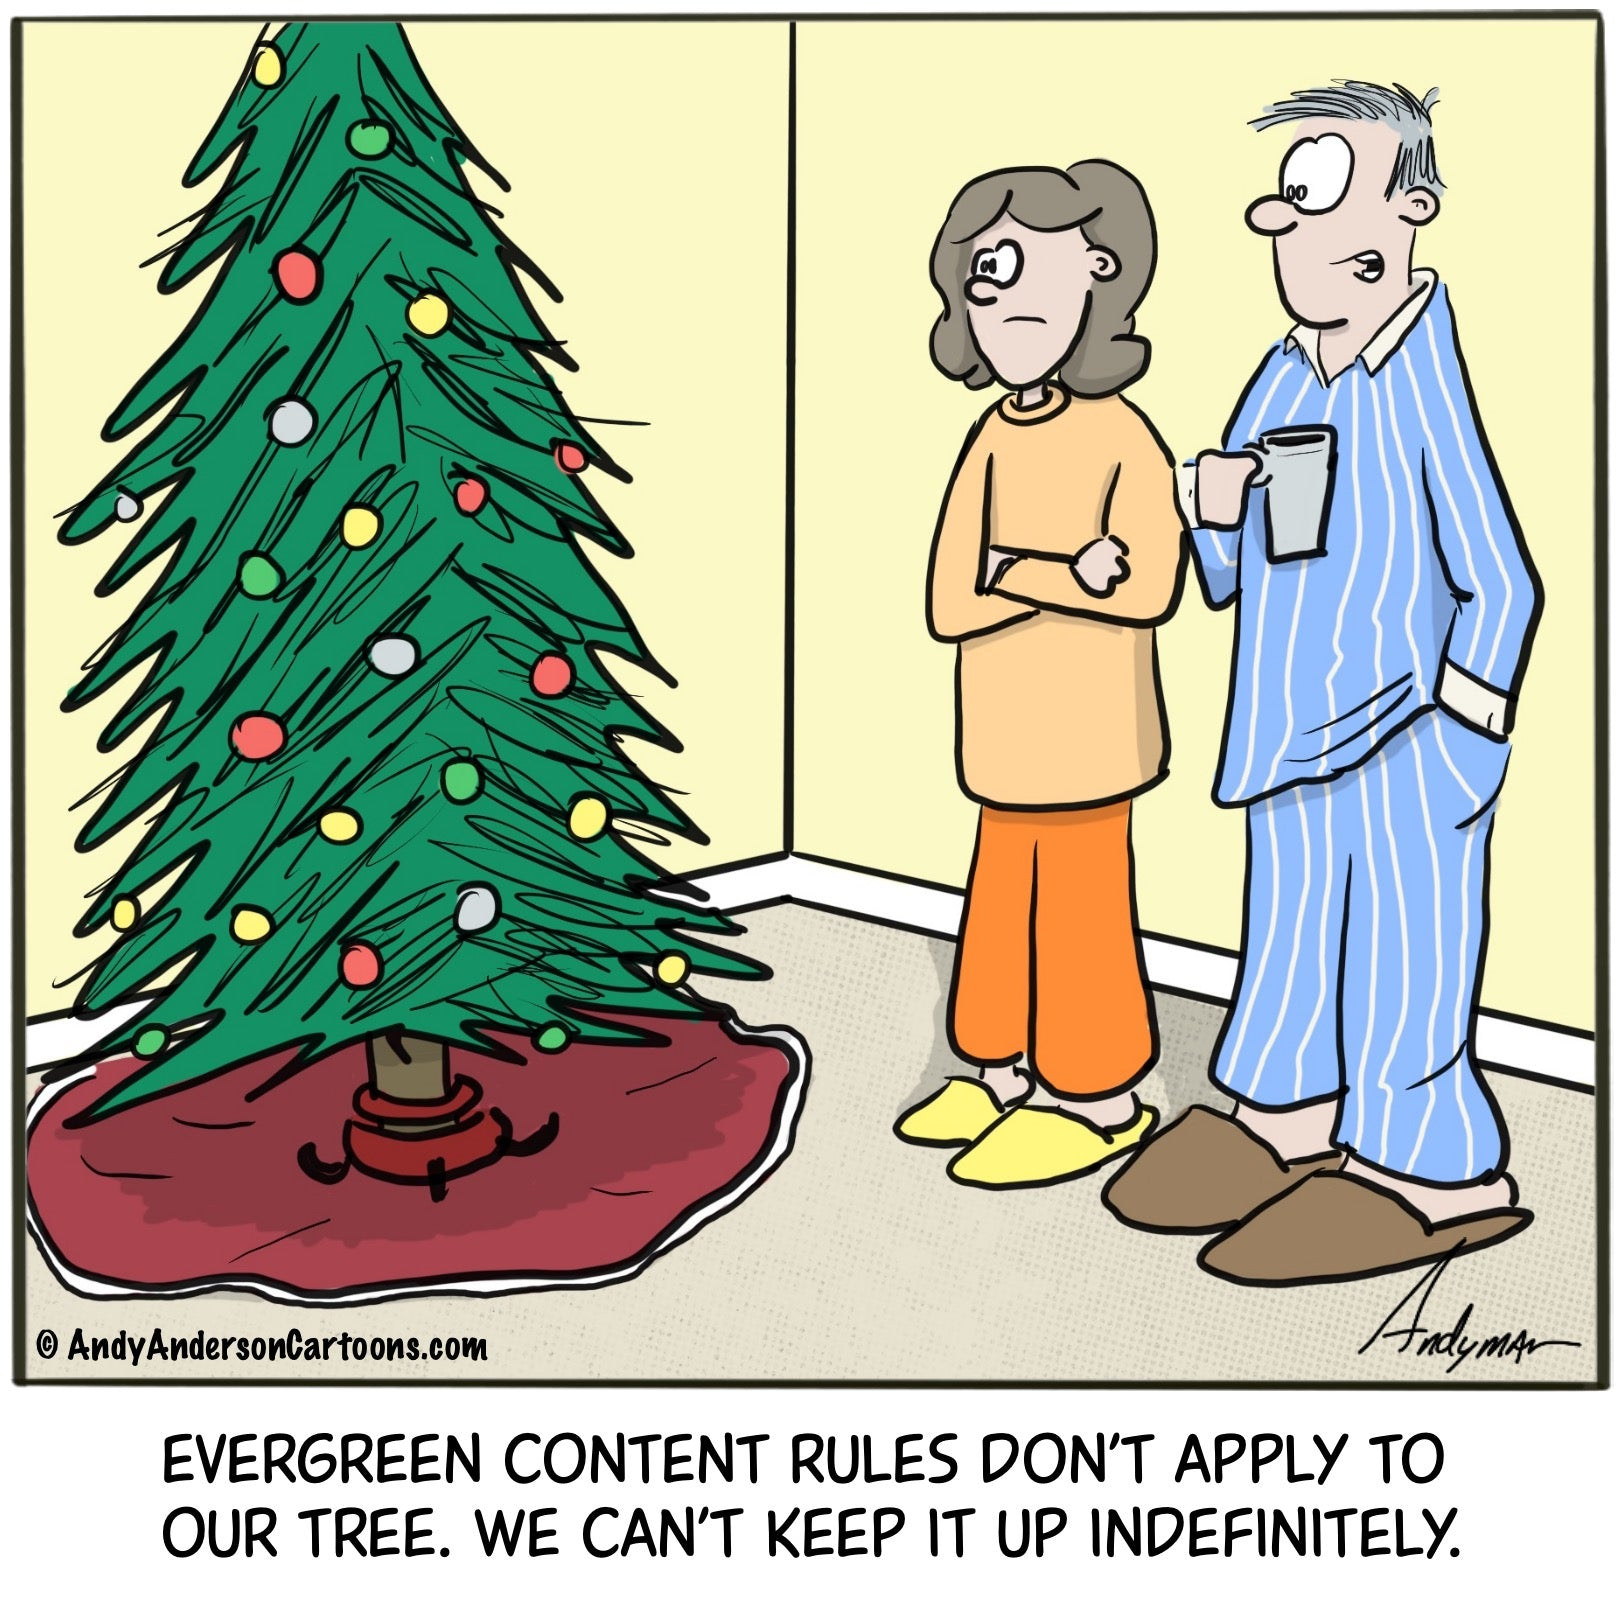 Cartoon about evergreen content and a Christmas tree by Andy Anderson